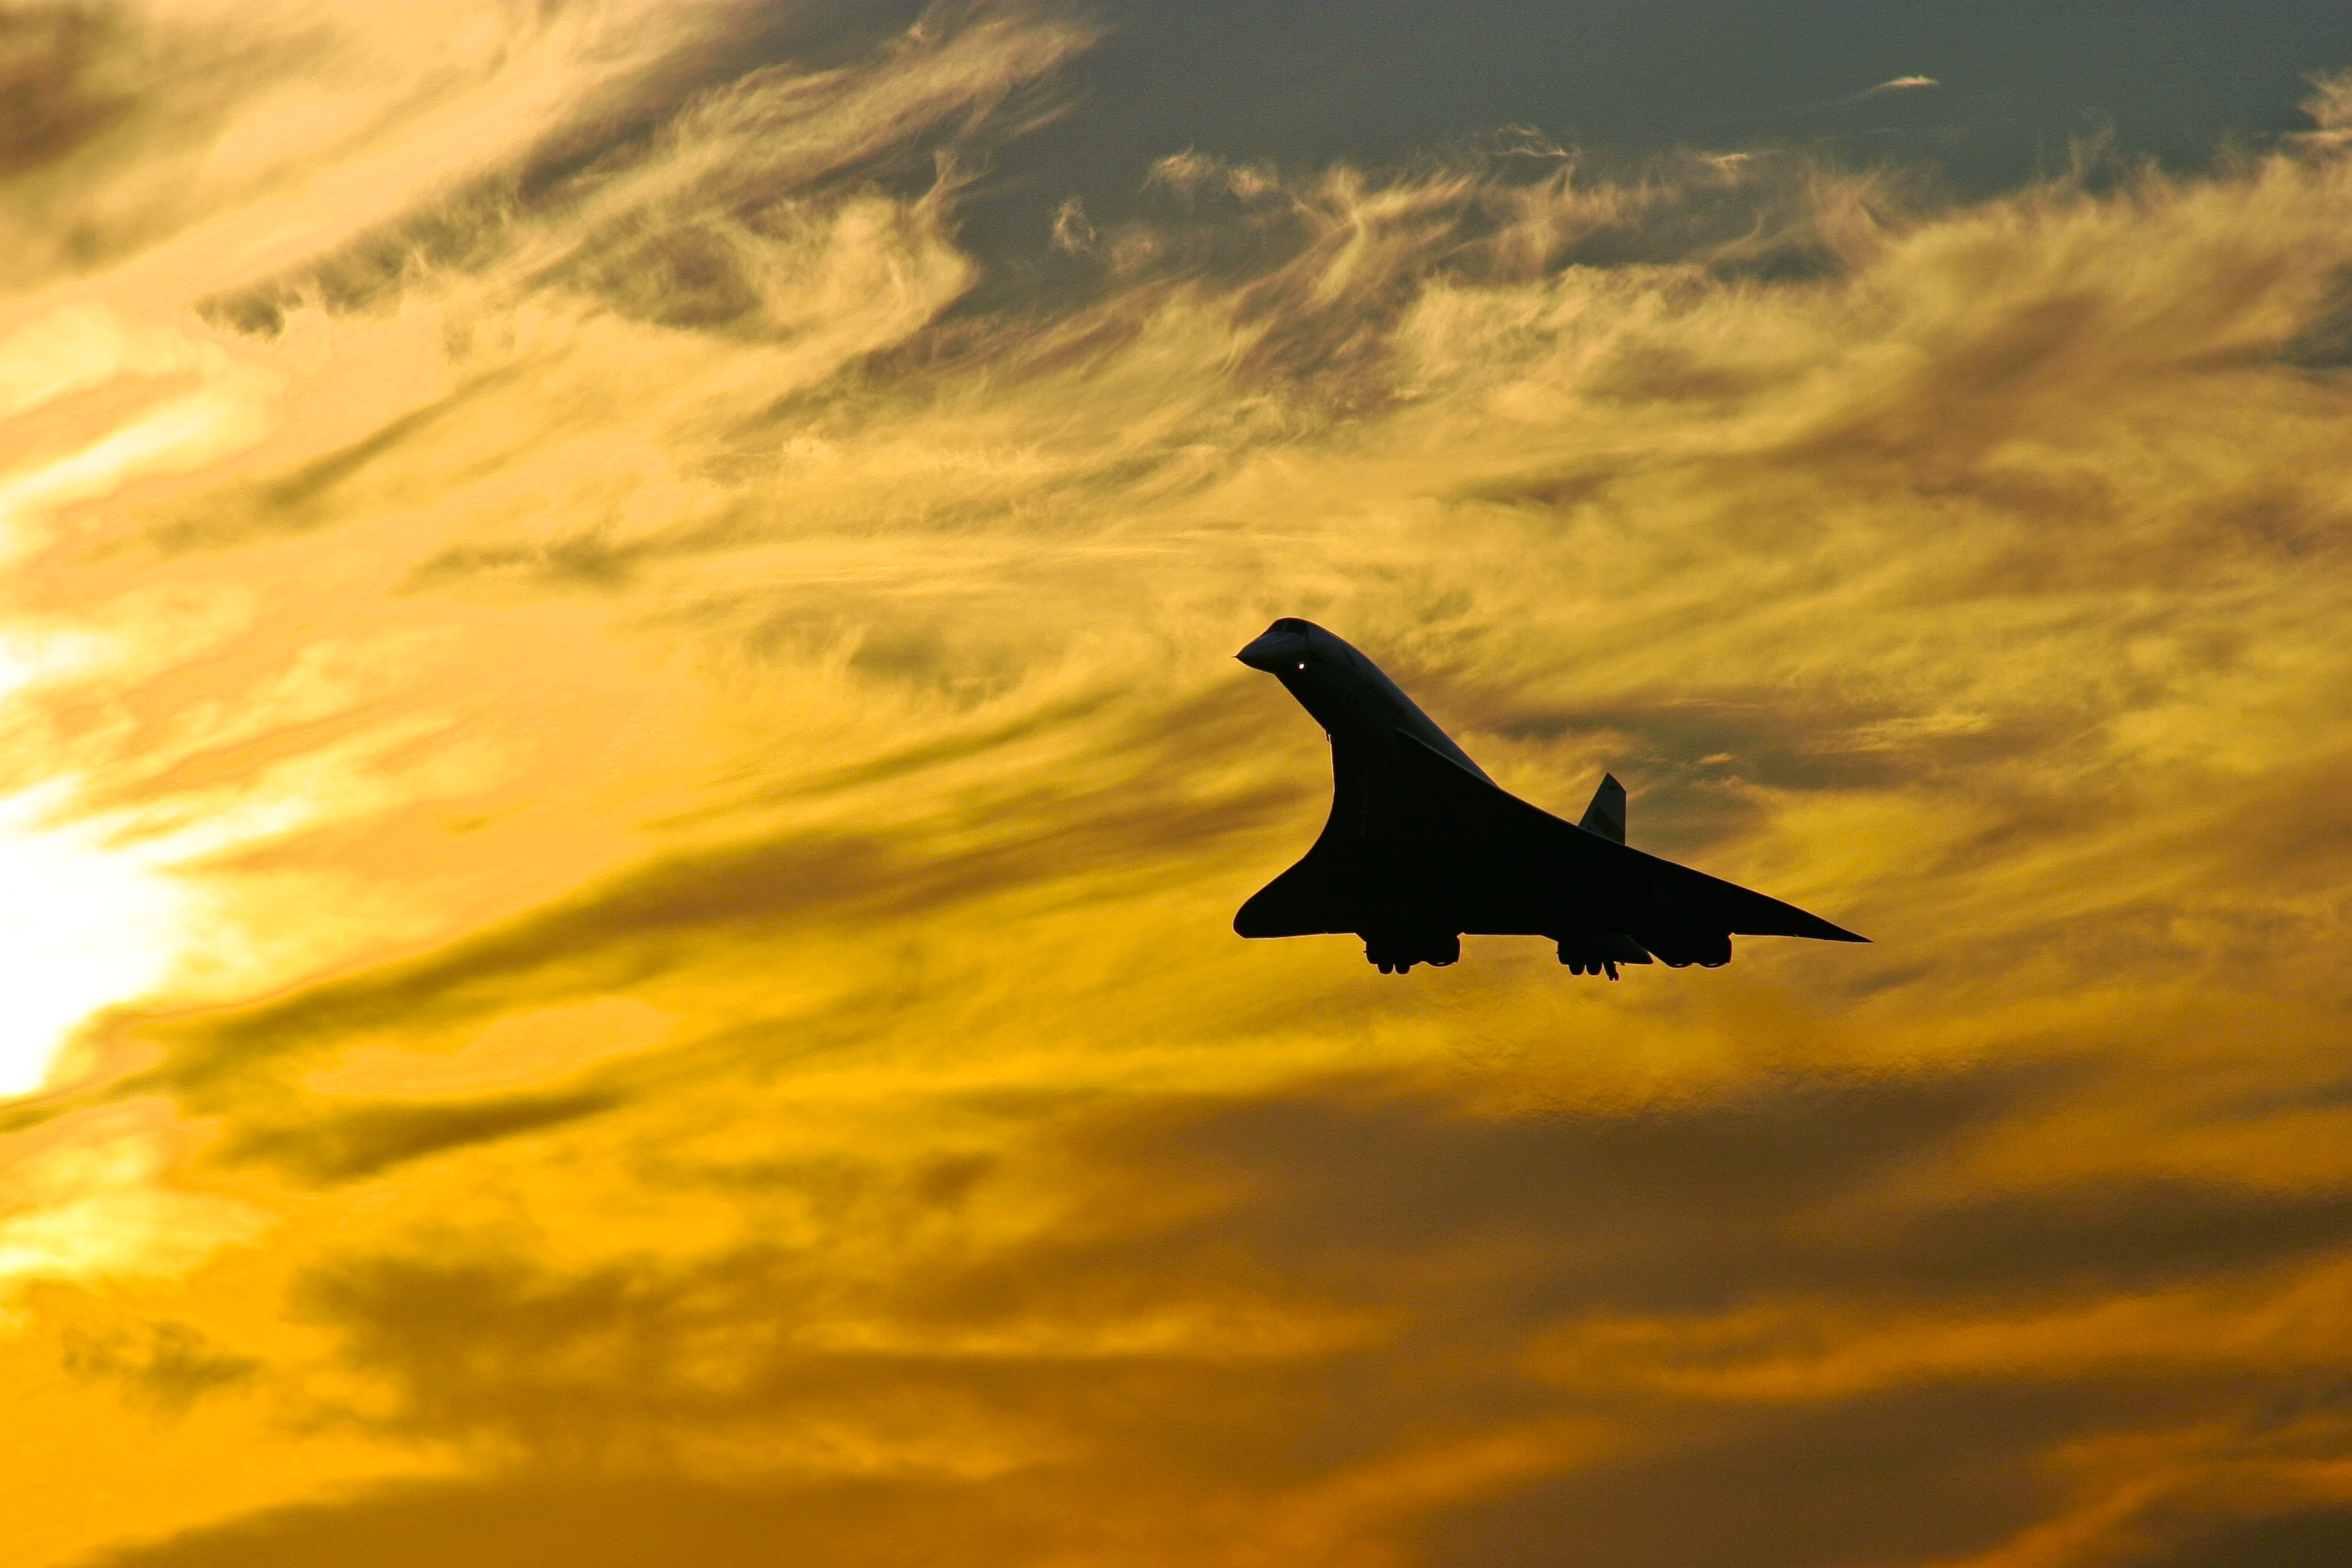 sunset Aircraft silhouettes concorde HD Wallpaper